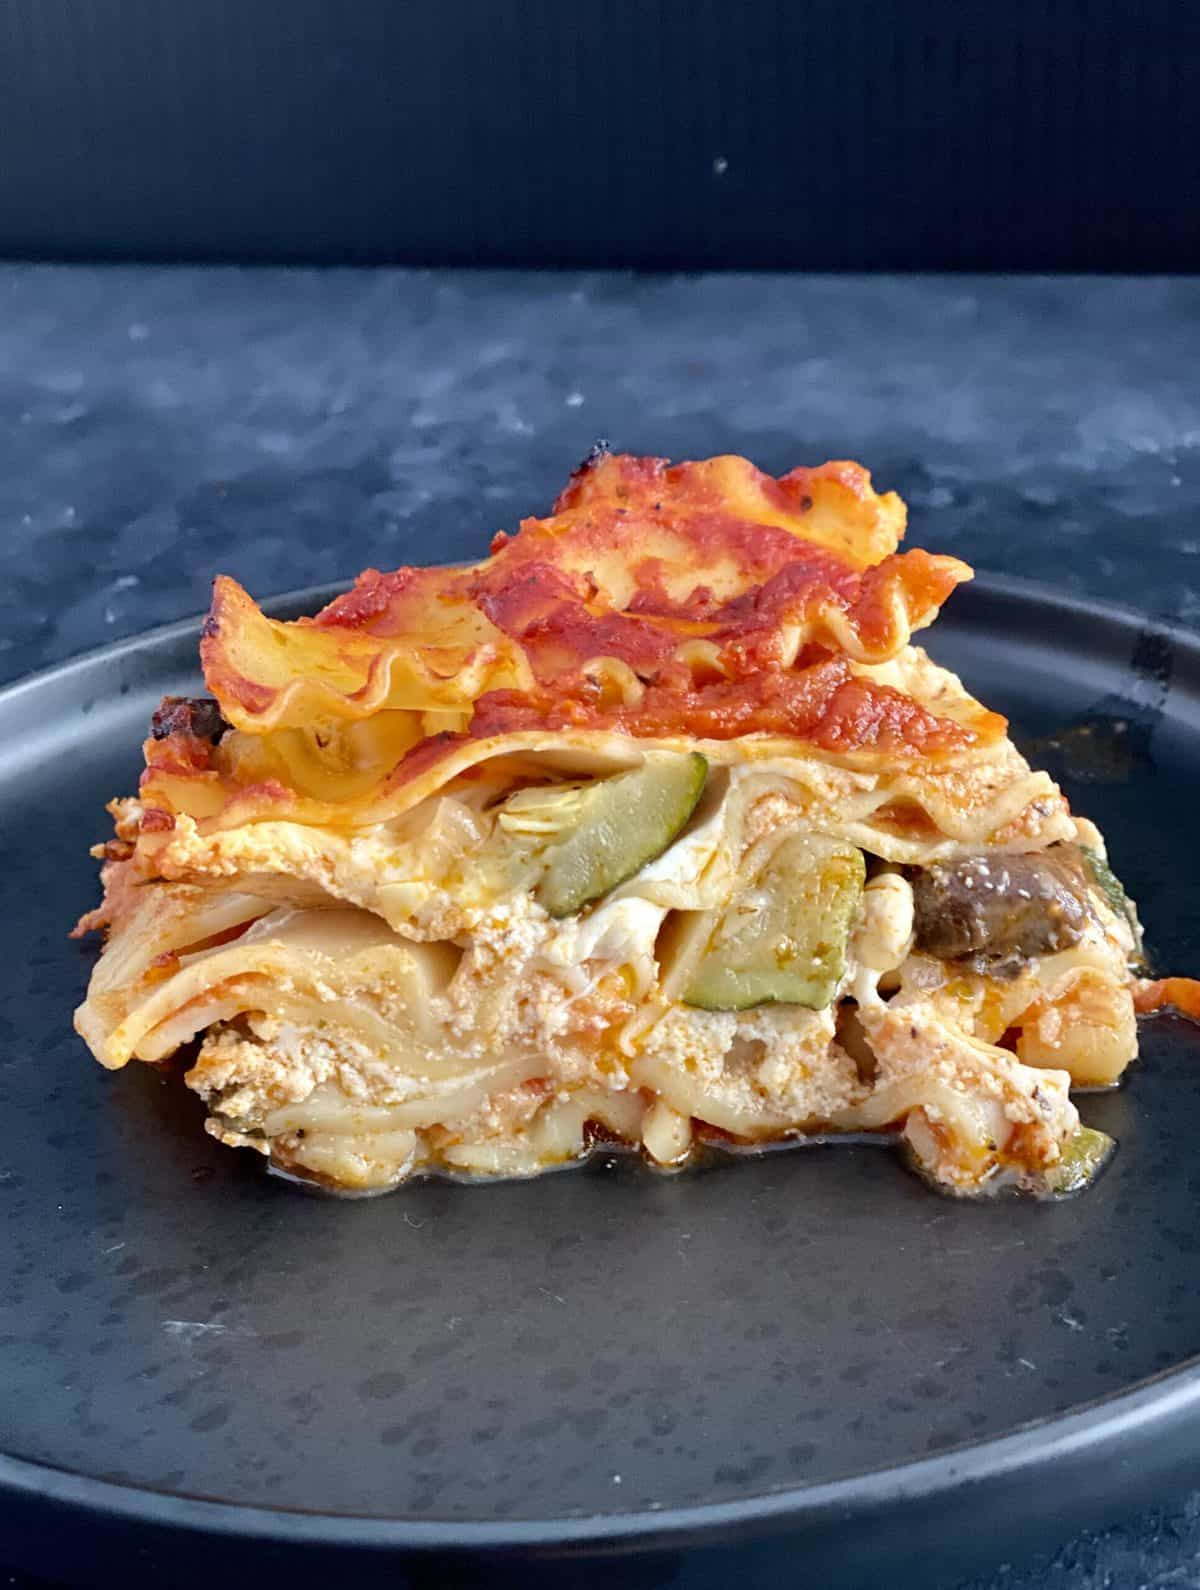 A slice of zucchini lasagna on a navy plate.